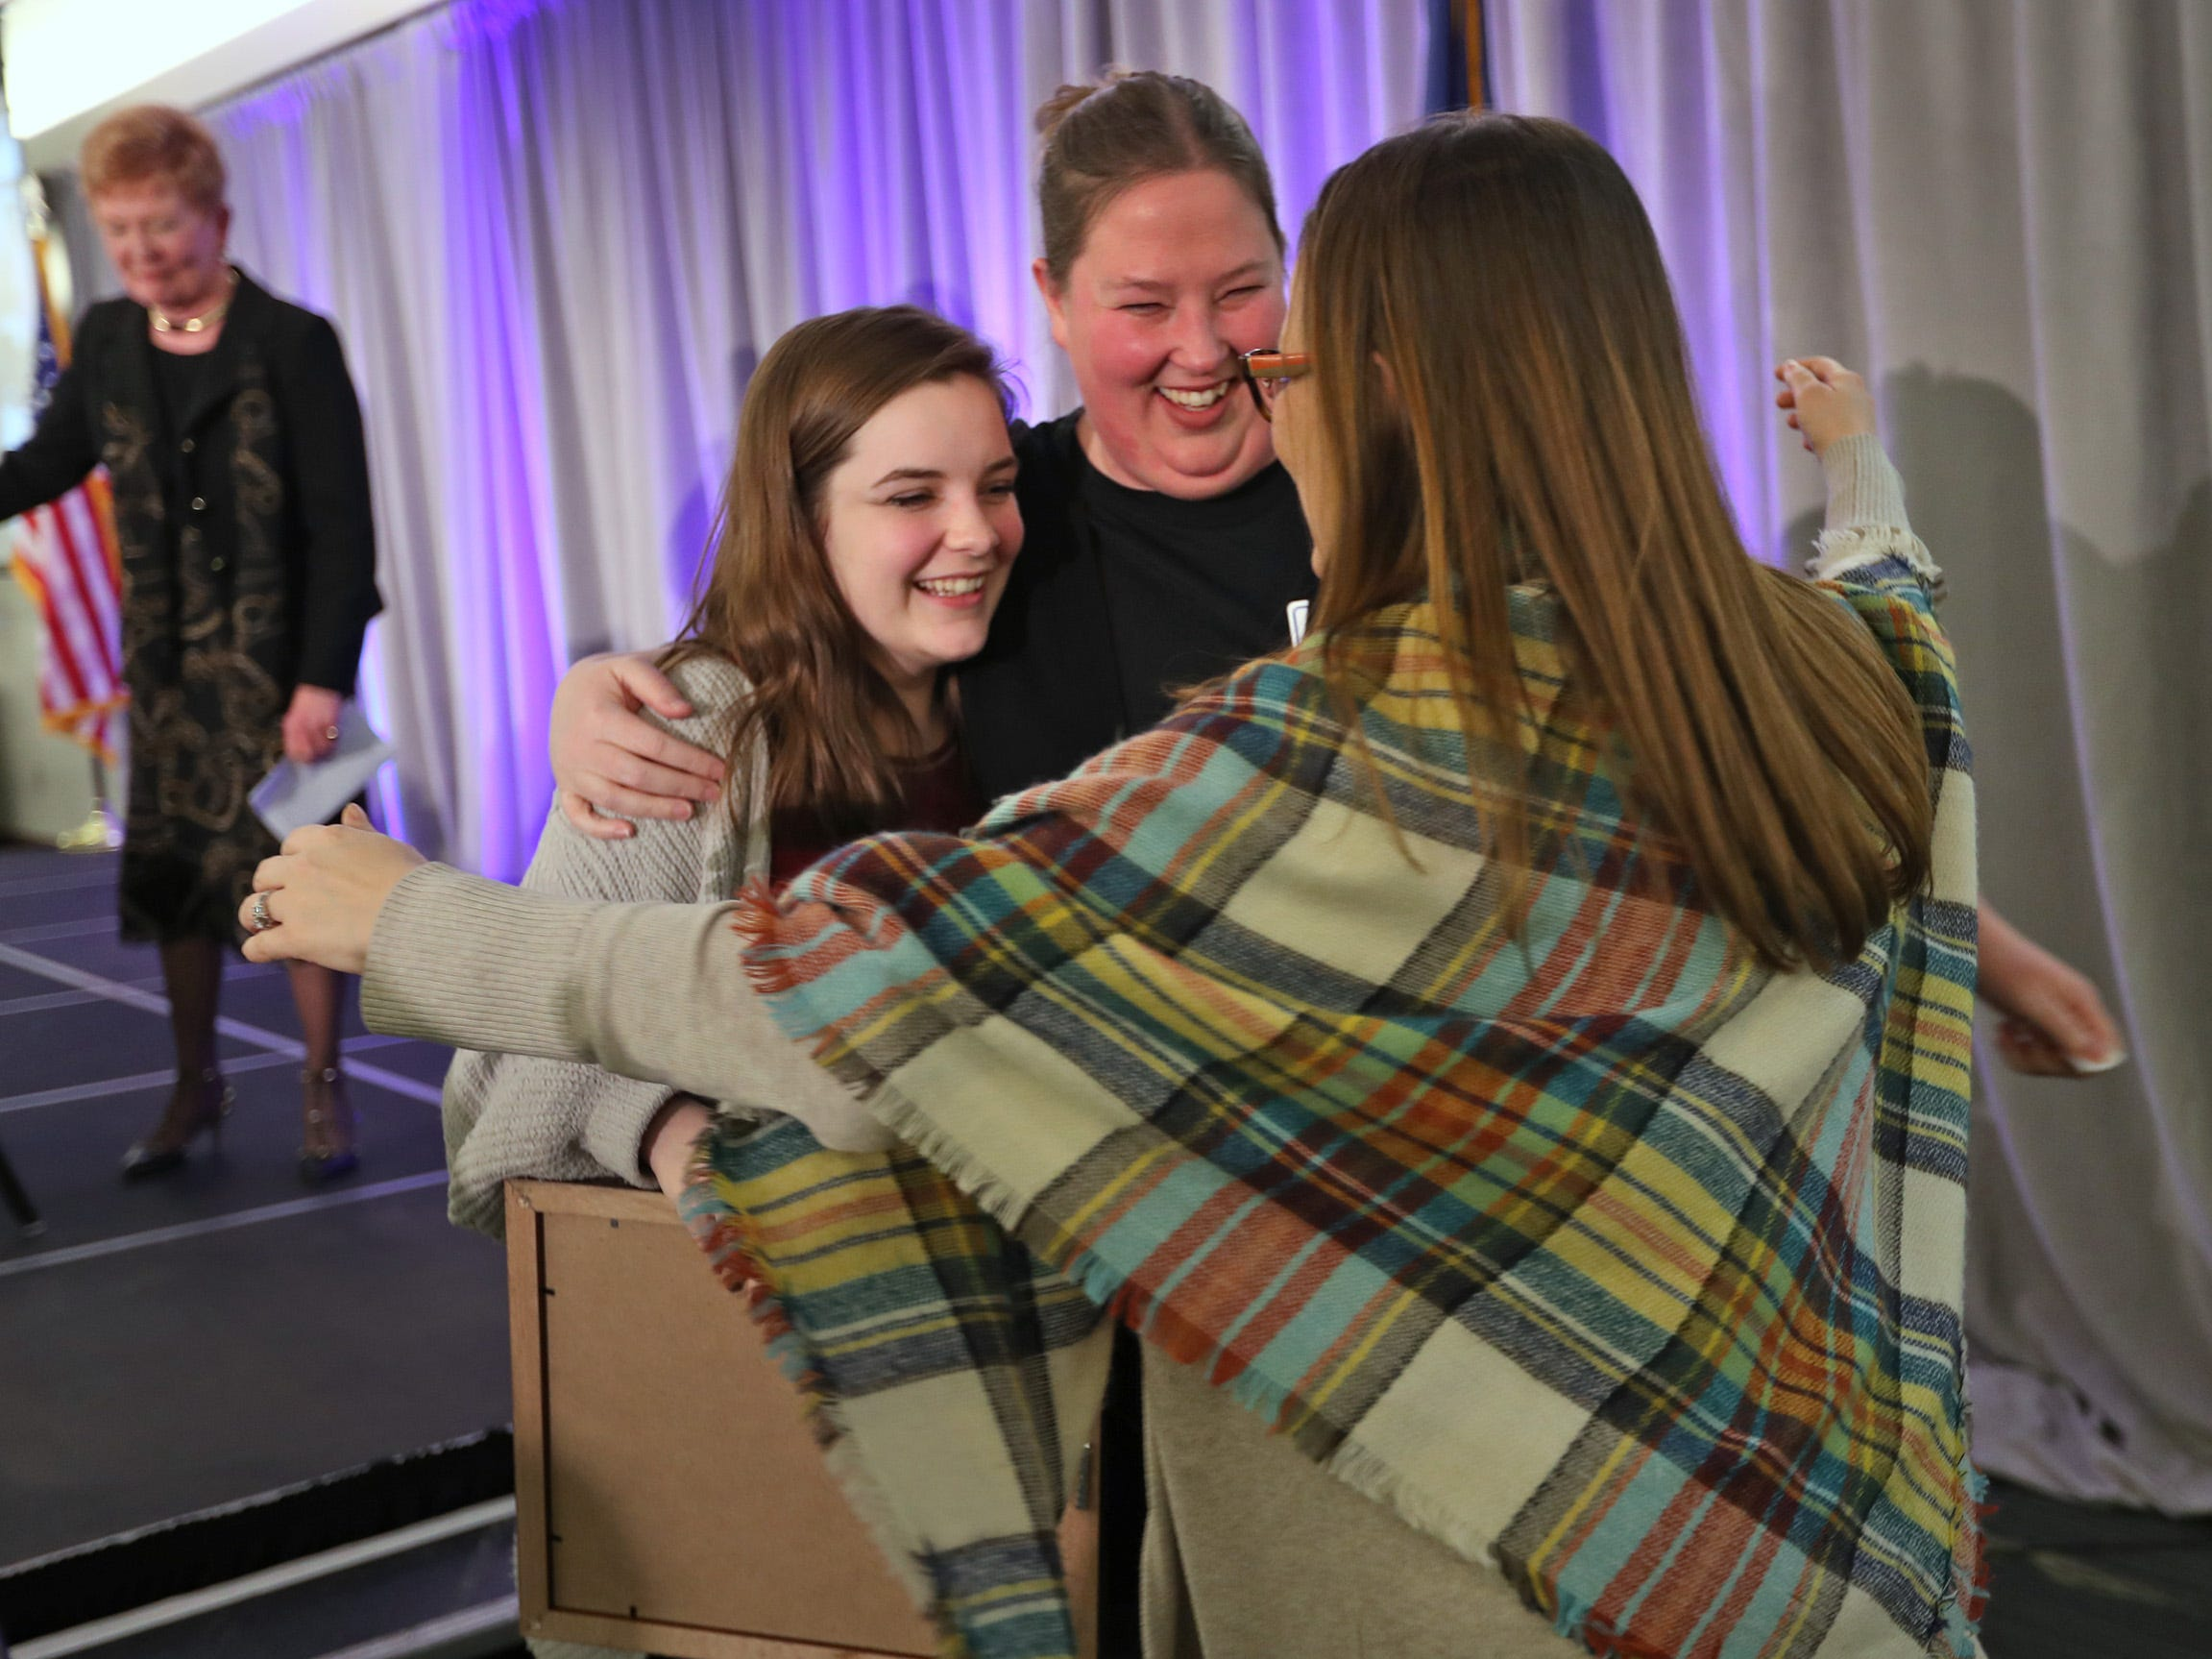 Perry Meridian High School student Jordyn Sloan, from left, gets hugs from her teachers Jacqui Sheehan and Jessica Hunter after Danielle received her 2nd Place Scholarship award at the 44th Annual Abe Lincoln Awards Program, Friday, Feb. 8, 2019. The Kiwanis Club of Indianapolis program was held at Ivy Tech Community College.  20 high school student were honored at the annual event which celebrates overcoming adversity in life to succeed. Four of the 20 students received scholarships.